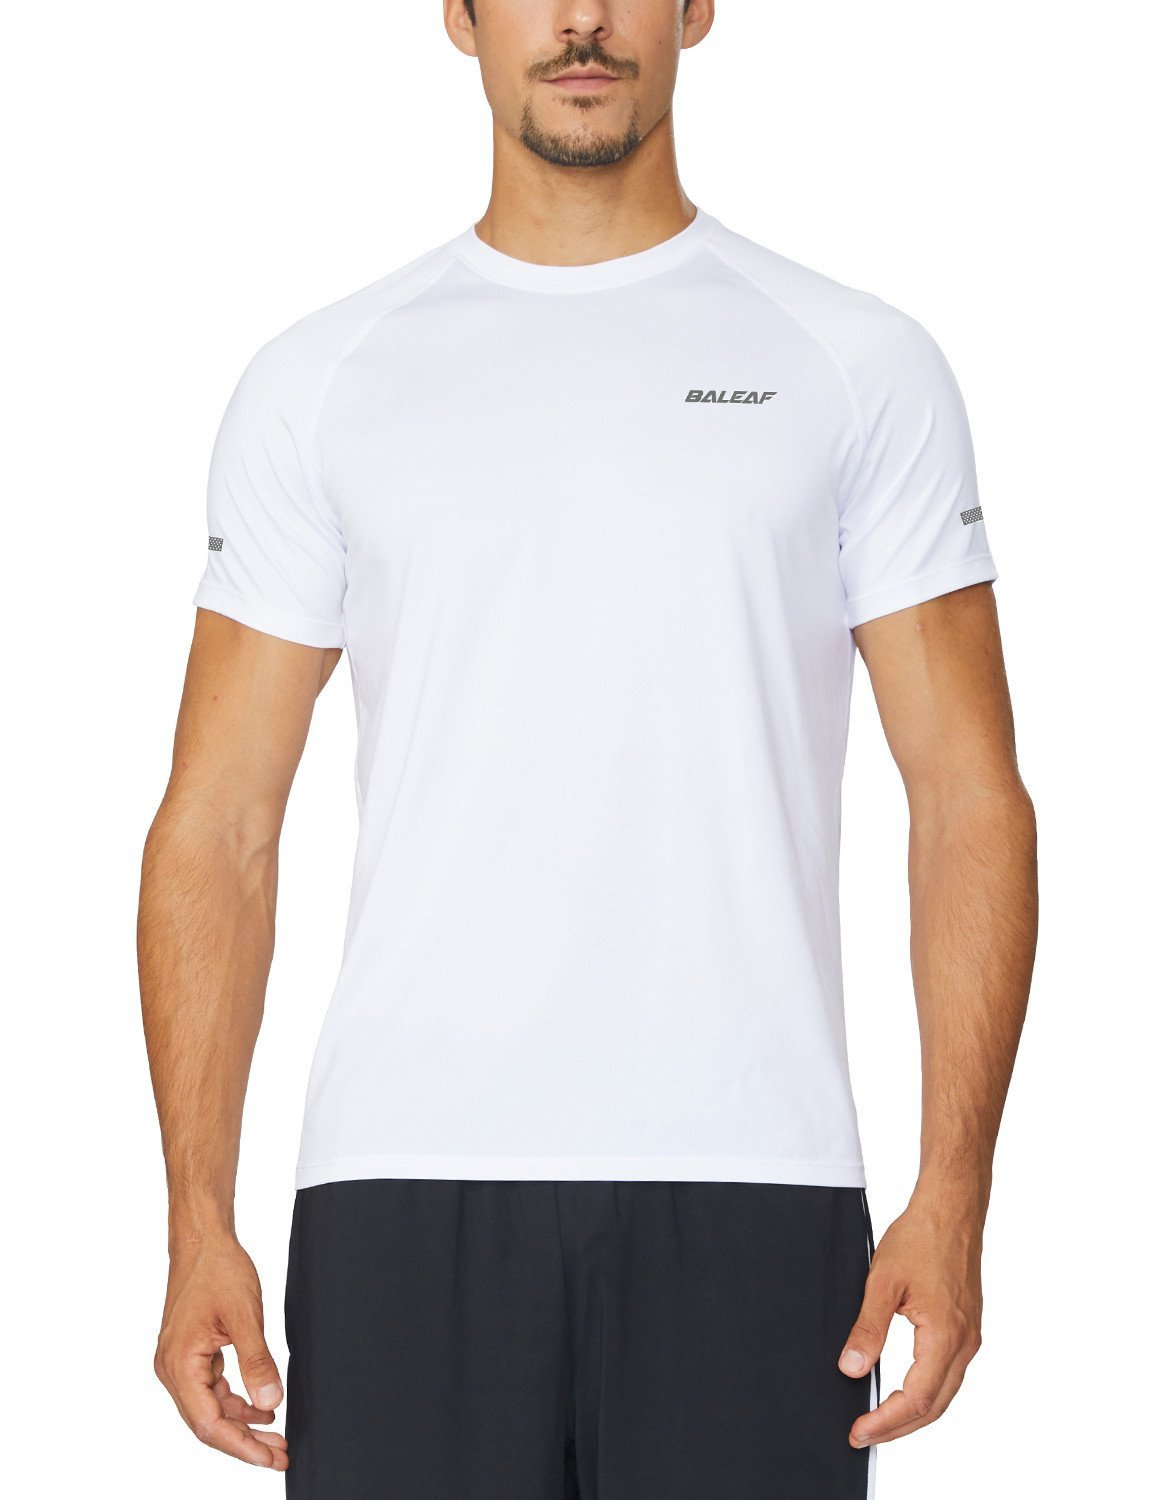 Baleaf Men's Quick Dry Short Sleeve T-Shirt Running Fitness Shirts White Size M